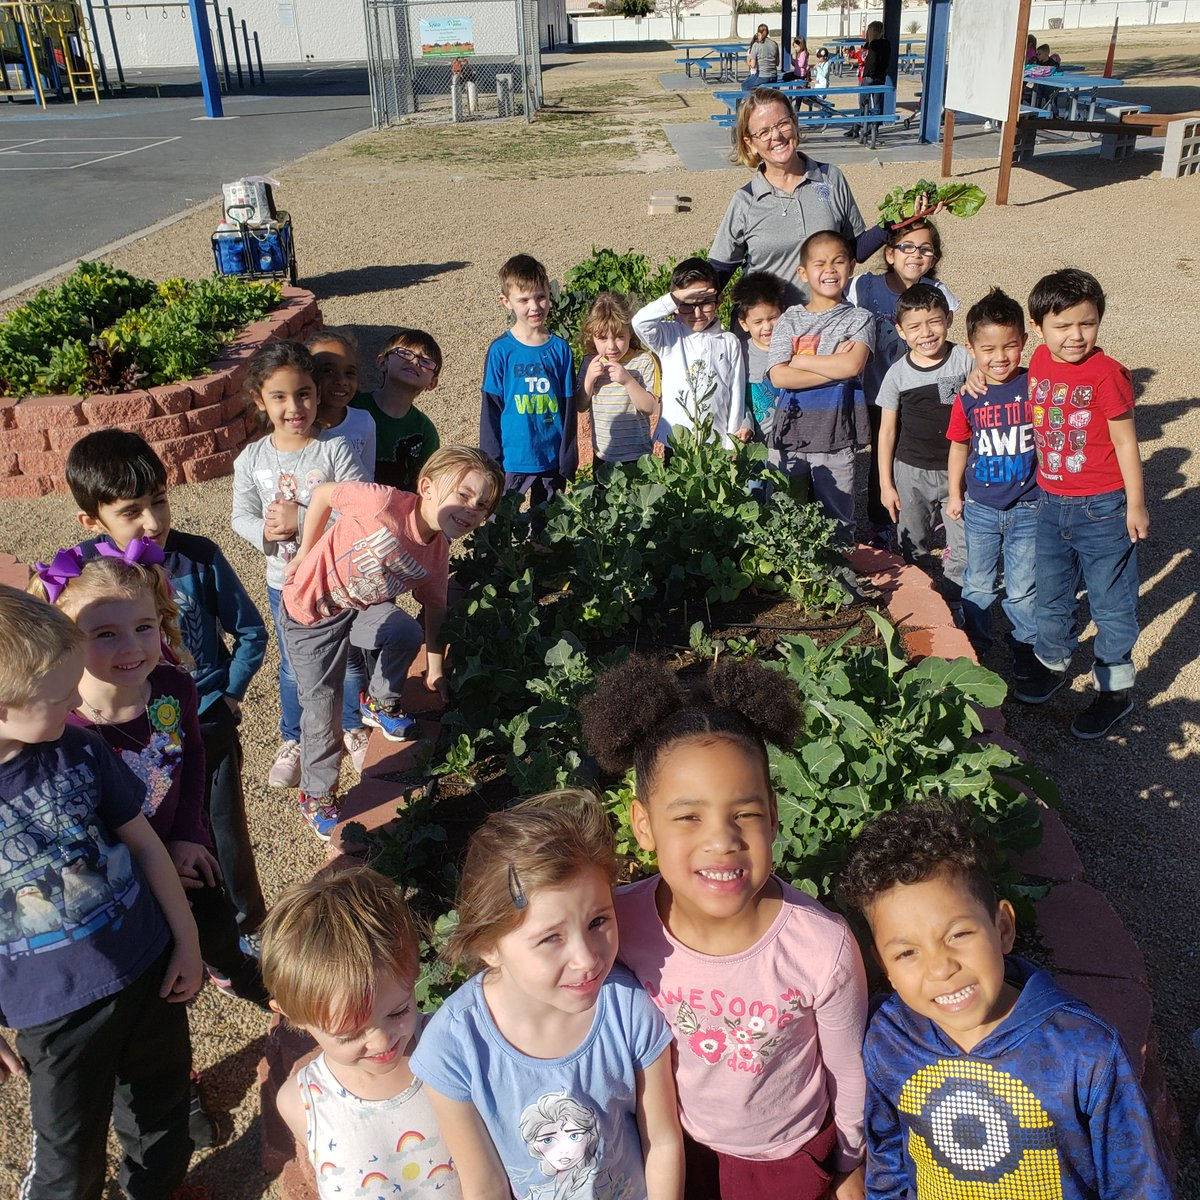 @SyscoLV helps students at Deskin Elementary engage with nutrition, STEM and conservation through Green Our Planet's school garden program. Thank you! #schoolgarden #stem #nutrition #educationpic.twitter.com/r8AlyXgVZ6